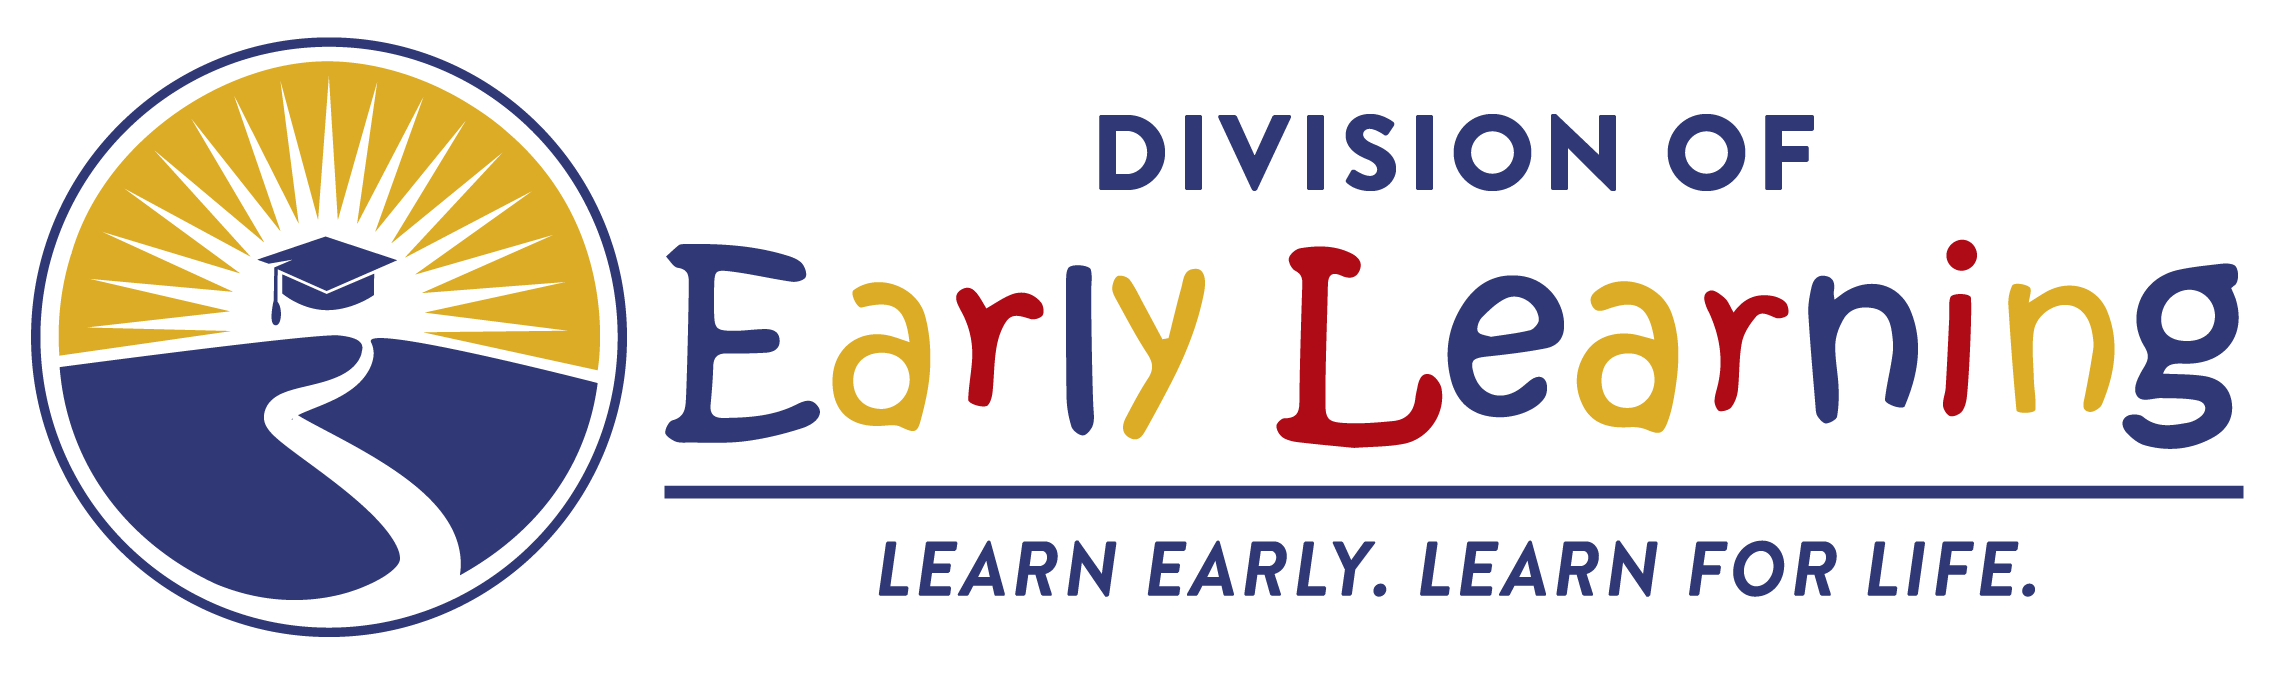 Division of Early Learning